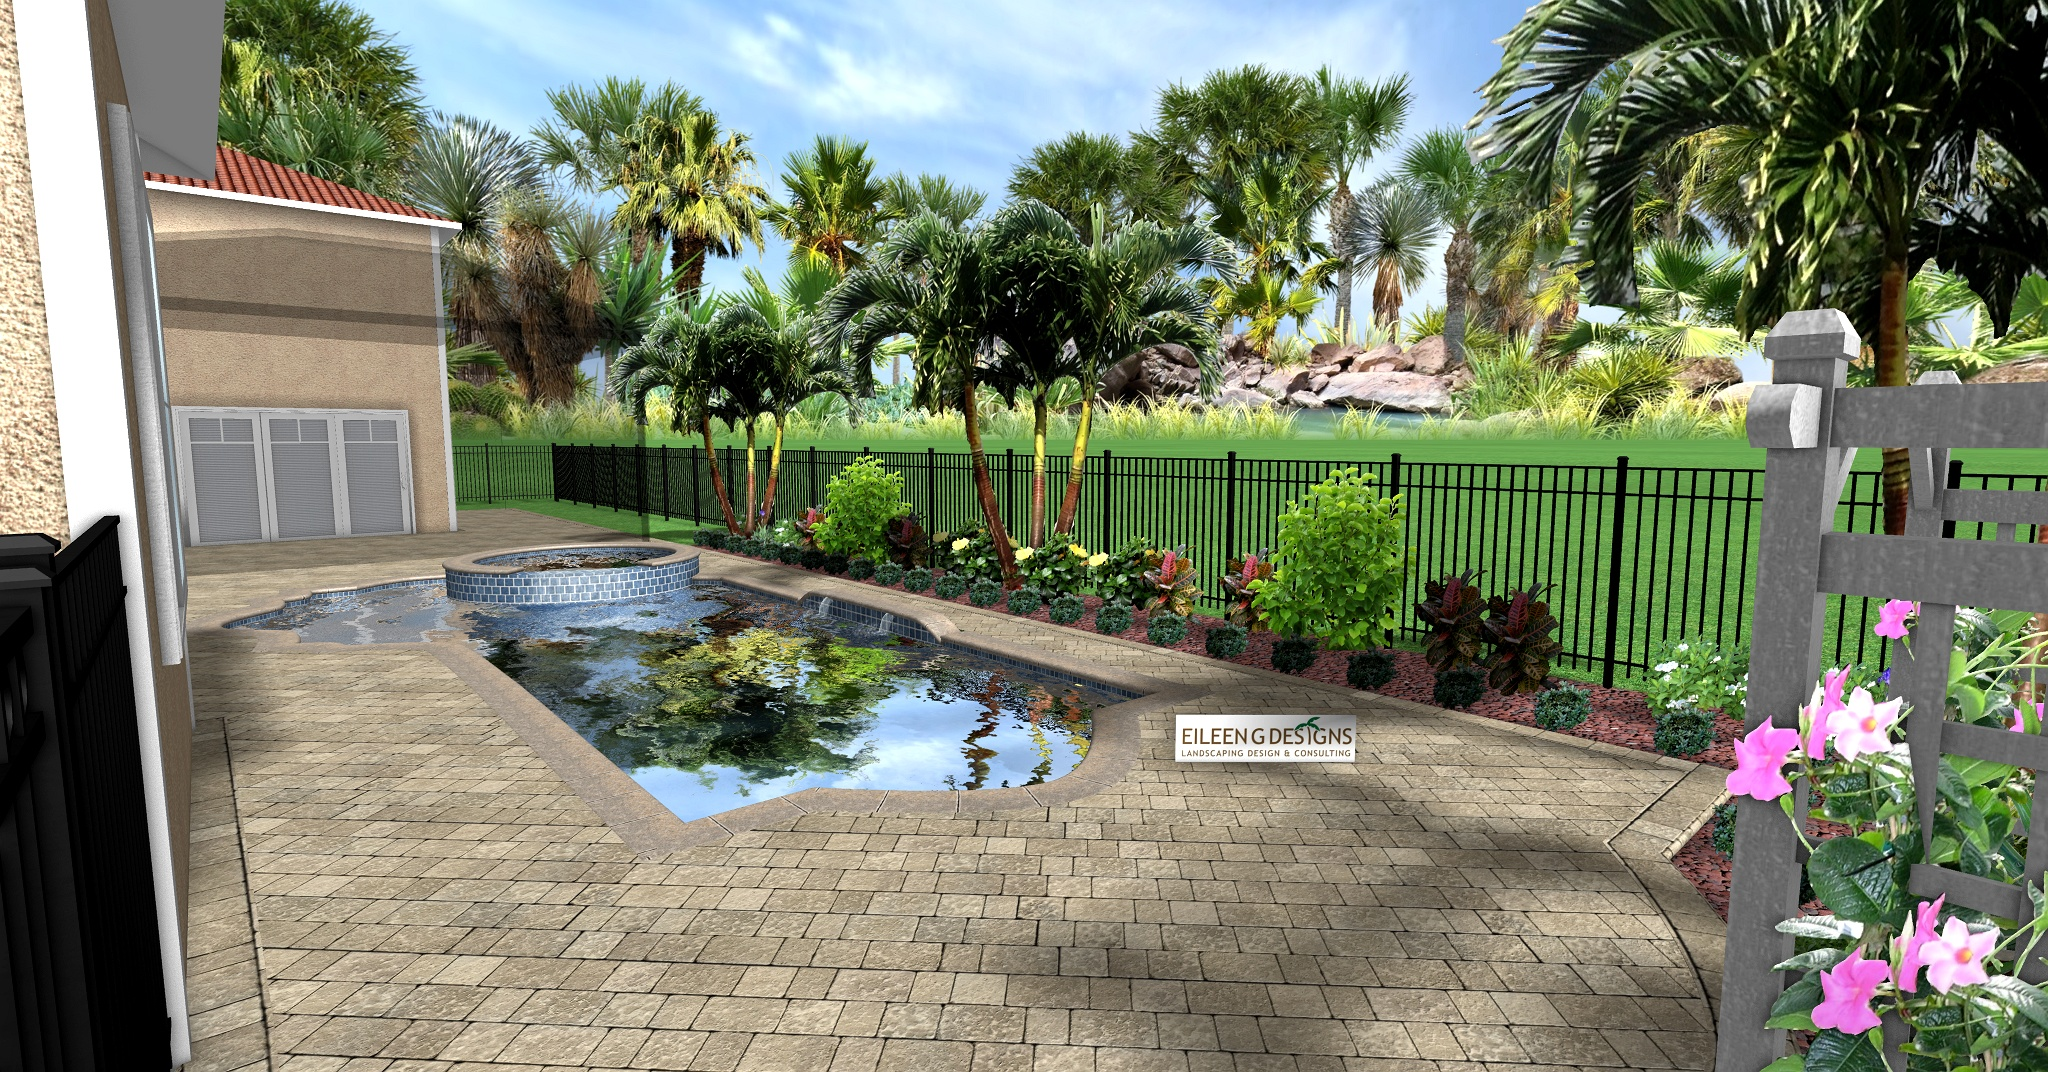 Small back yard design features a new paver brick pool deck, low maintenance tropical landscaping, decorative rock and a gorgeous pot.